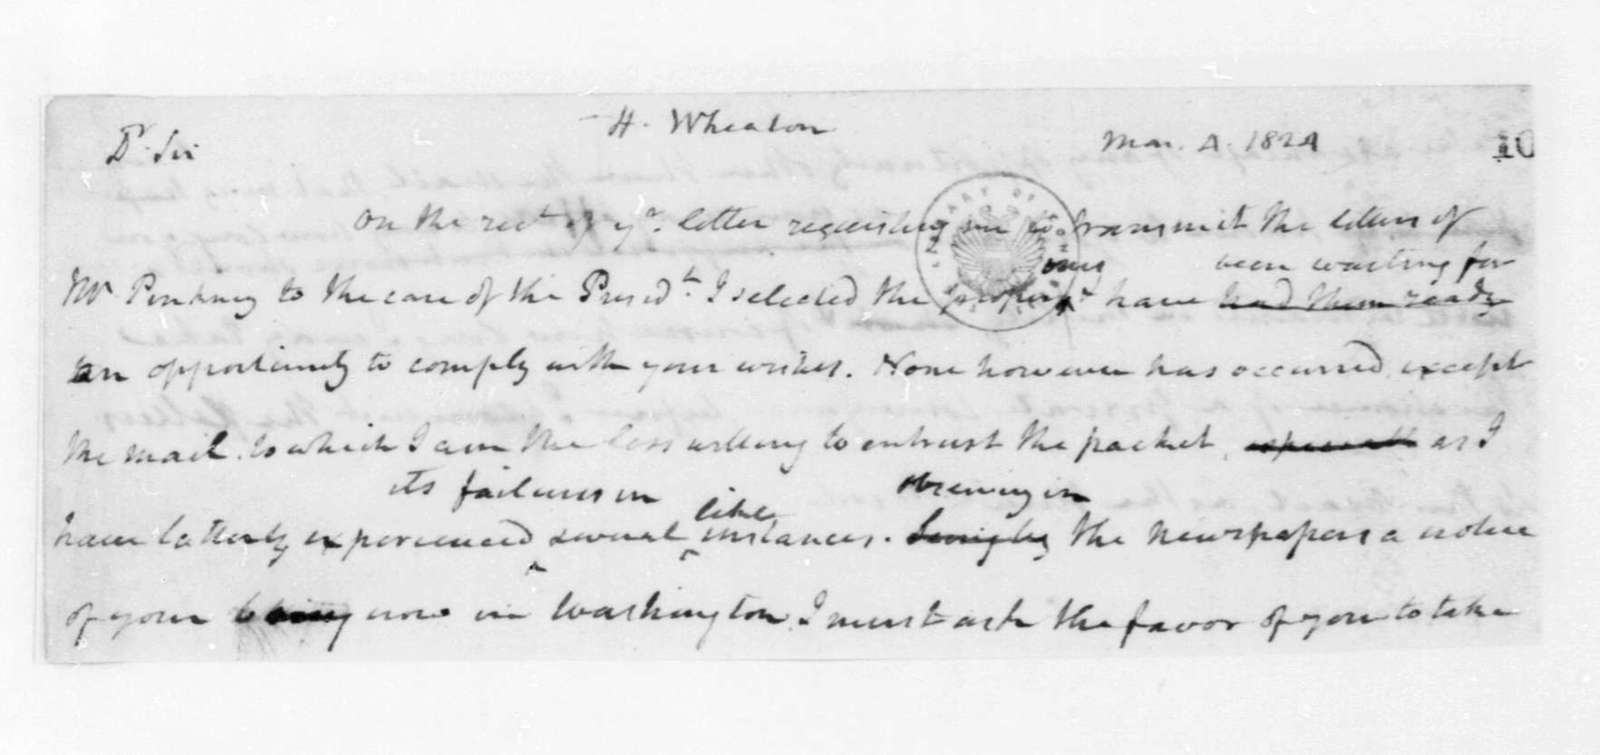 James Madison to Henry Wheaton, March 4, 1824.